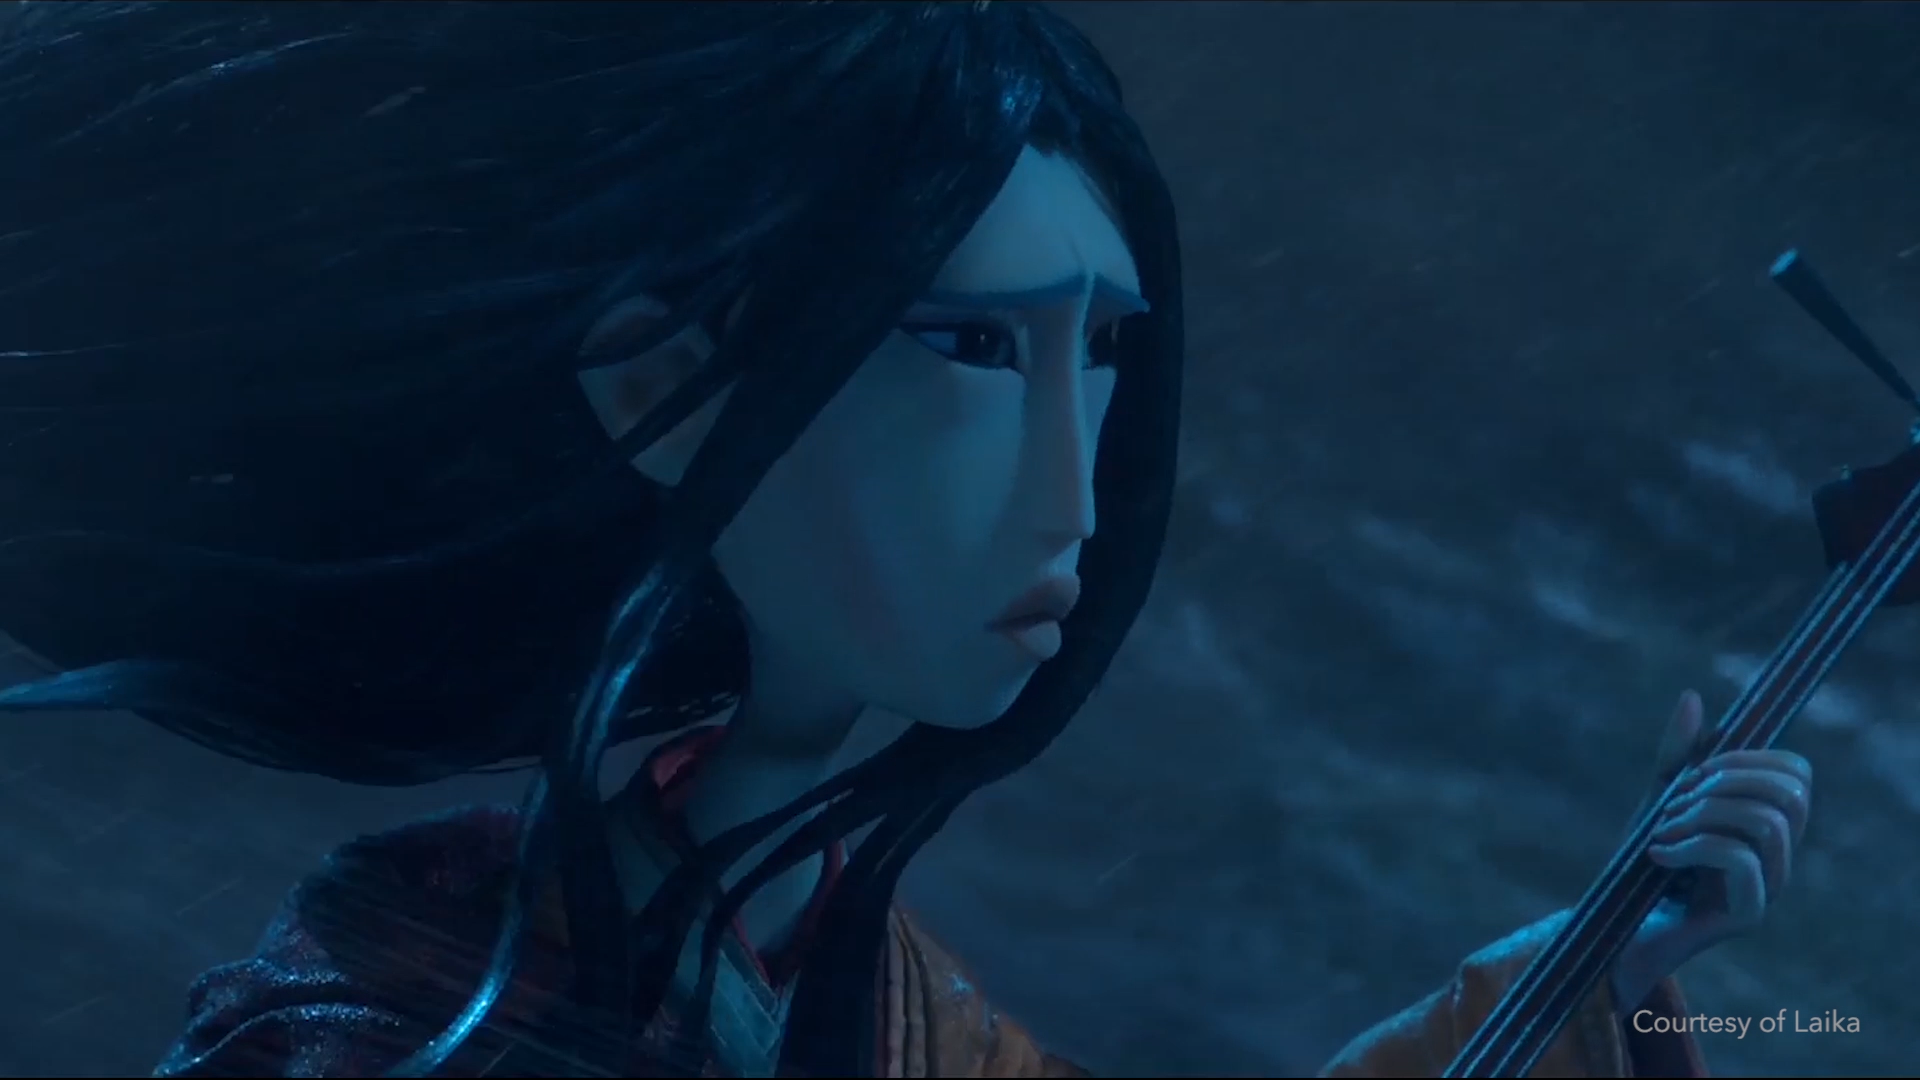 Managing your workflow with Foundry's Hiero produces movies like Kubo and the Two Strings